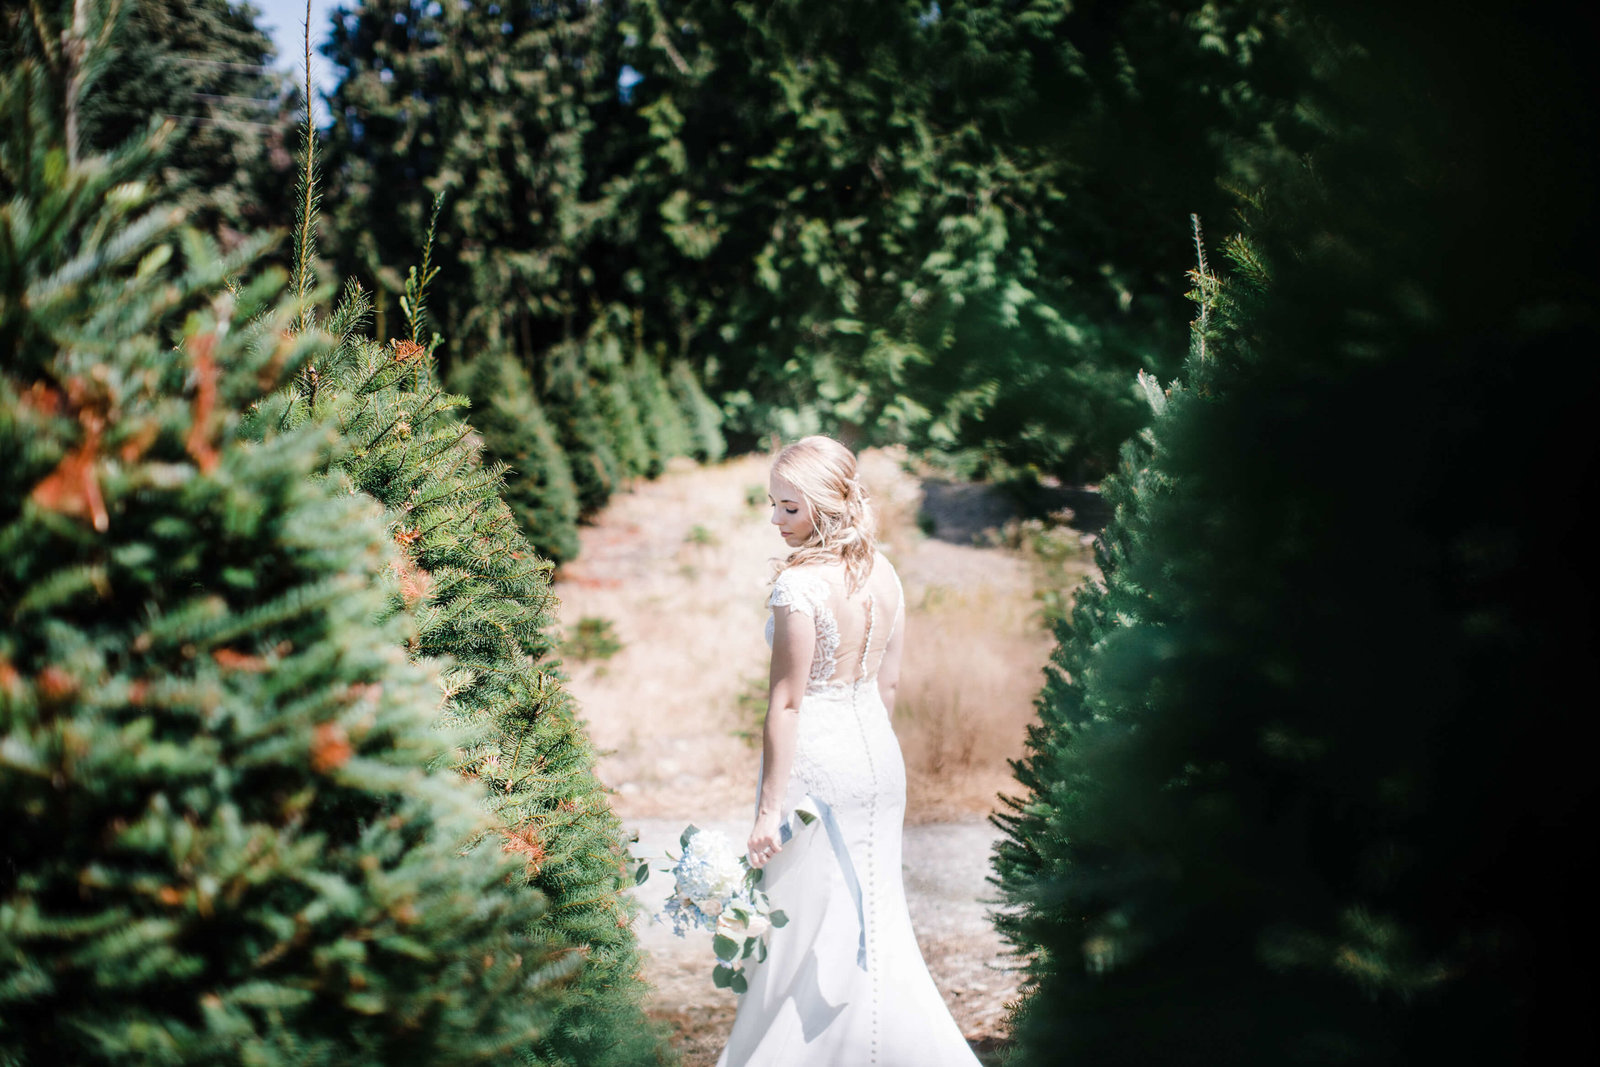 Trinity-tree-farm-wedding-photos-by-Adina-Preston-Photography-2019-175